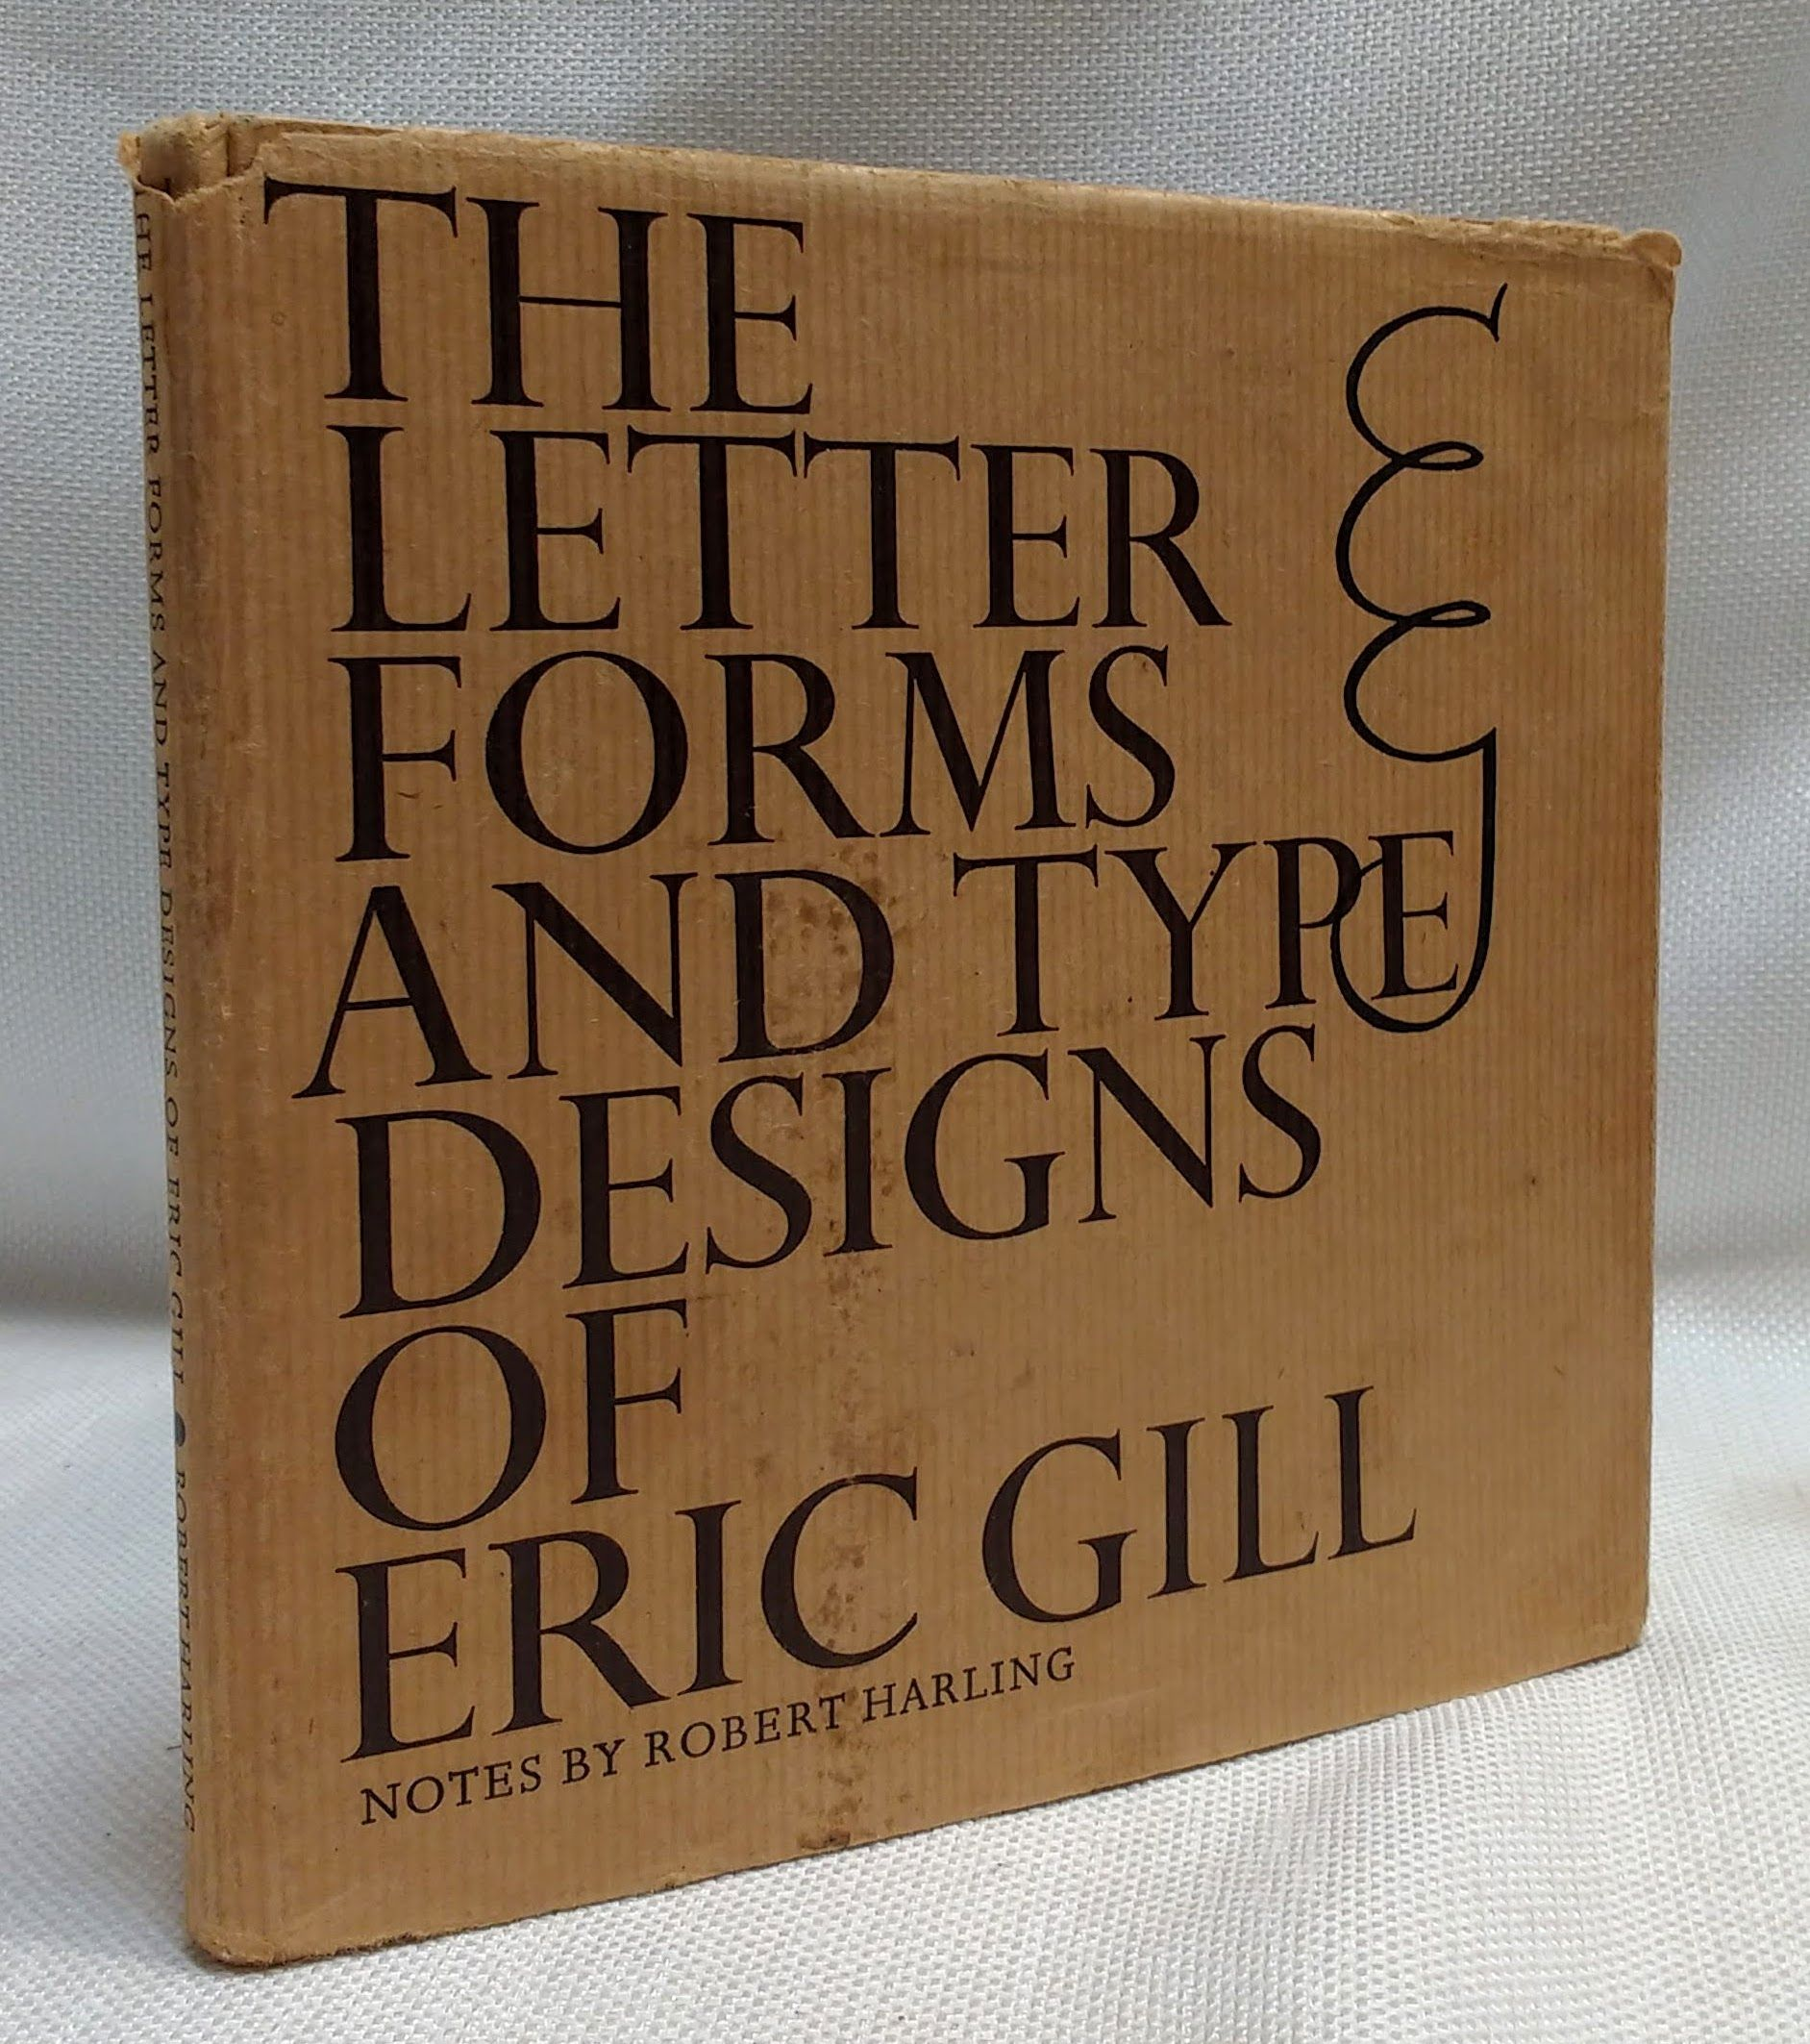 Image for Letter Forms and Type Designs of Eric Gill